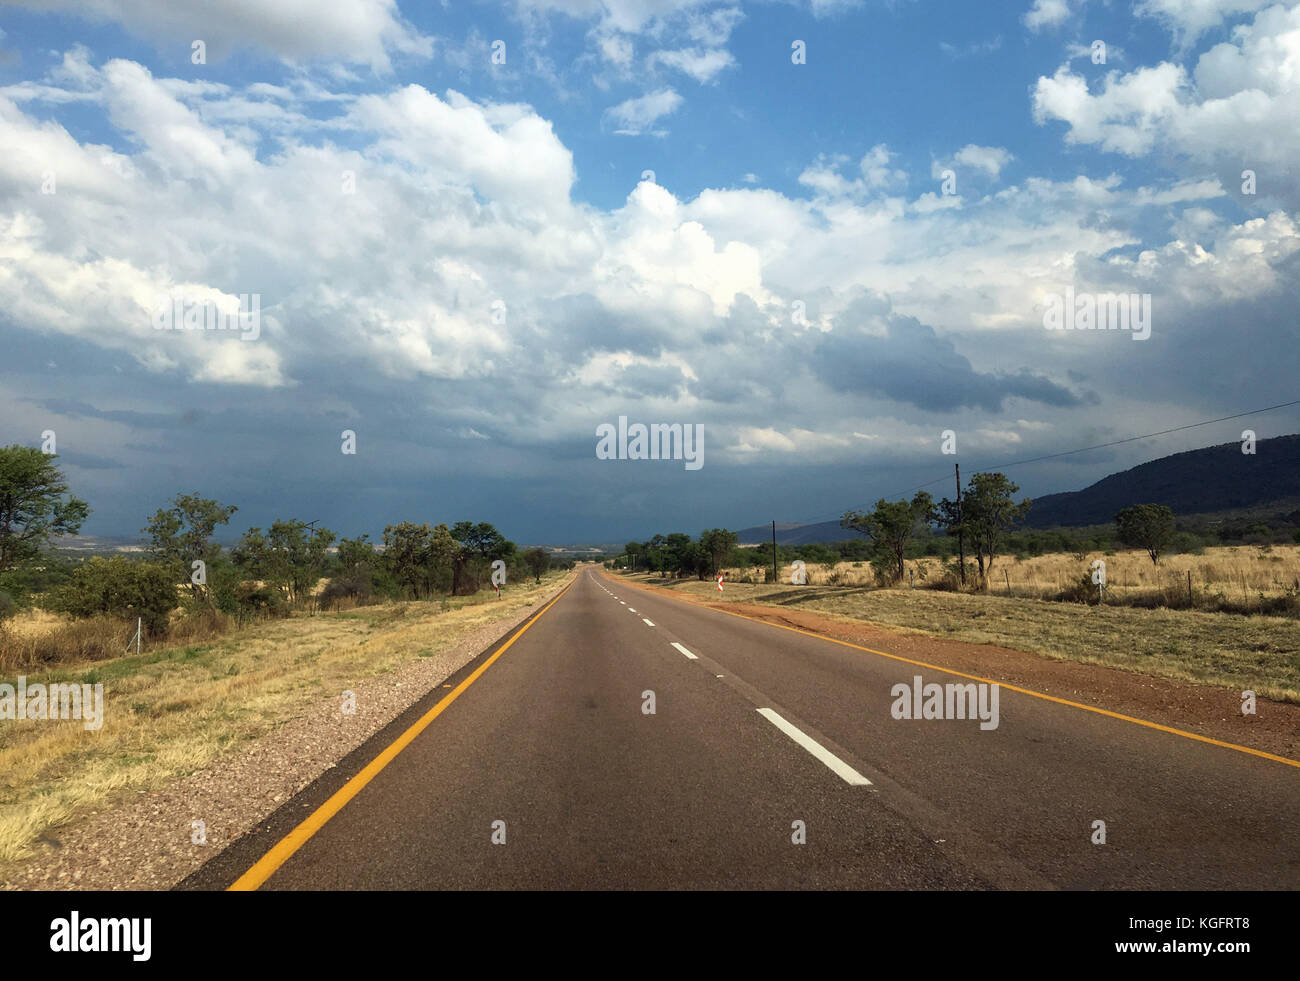 A Southe african road in the Waterberg - Stock Image